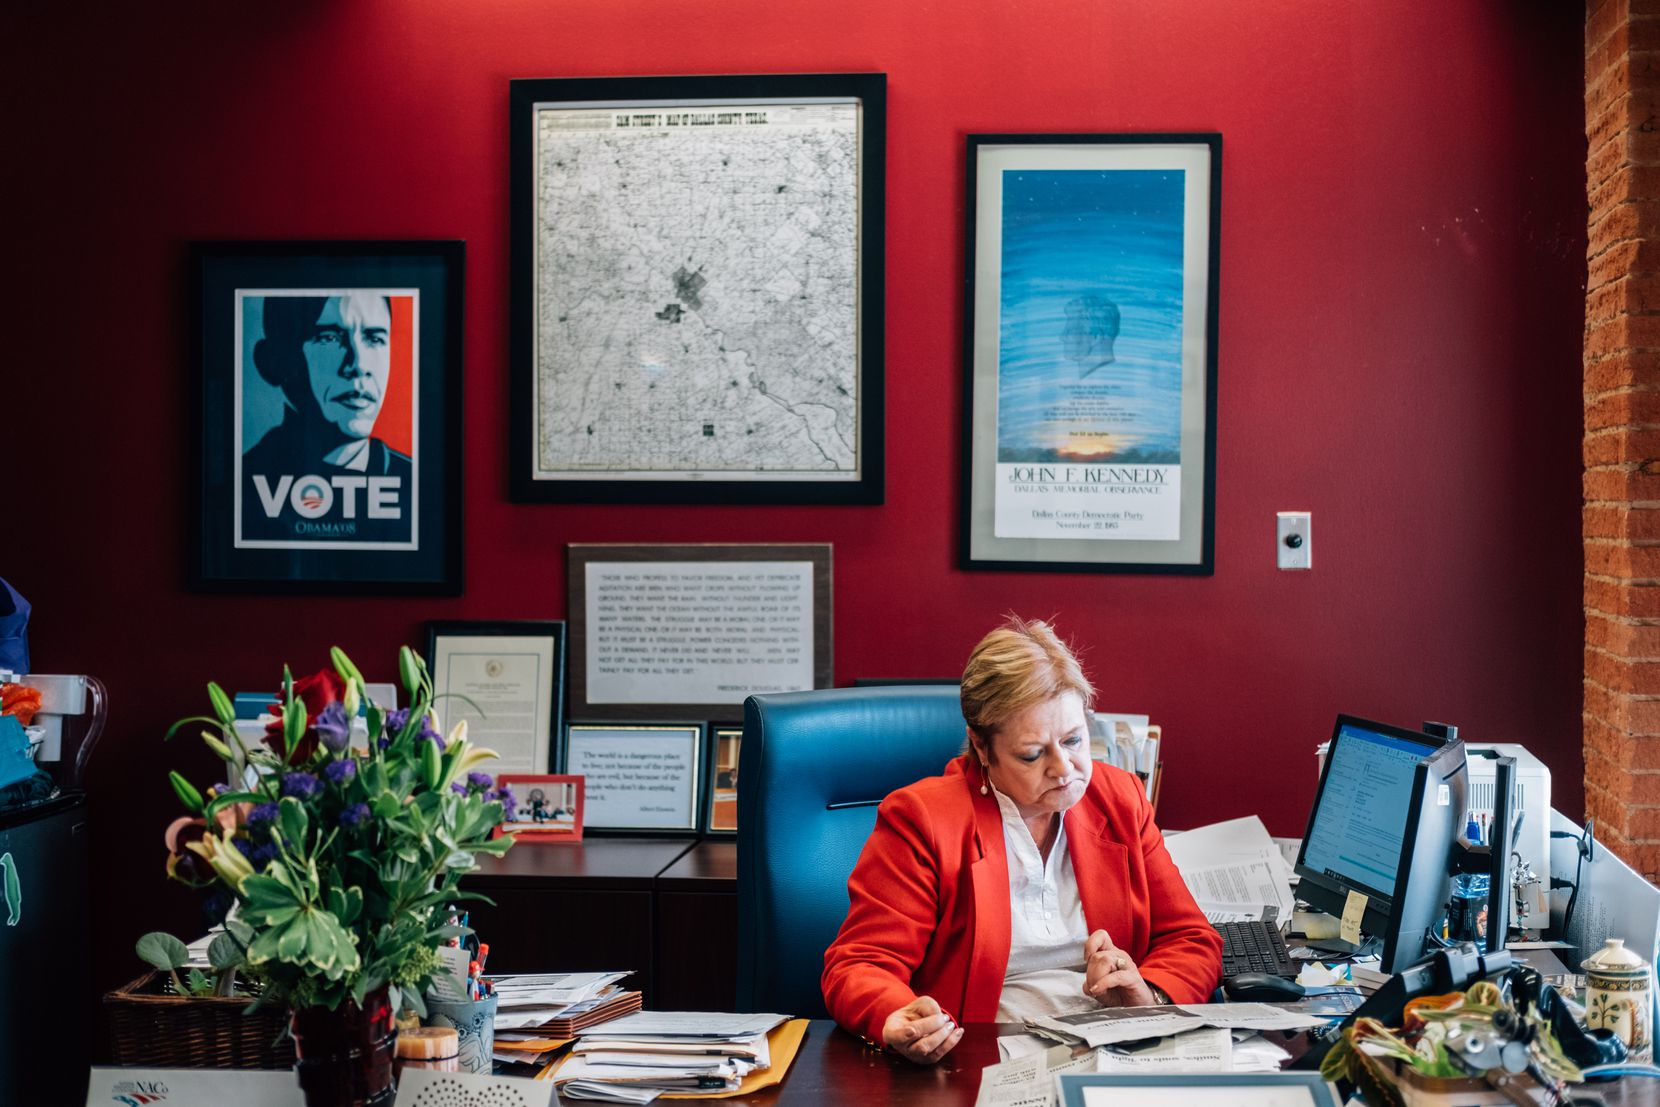 Theresa Daniel sits at her desk in her office as Dallas County Commissioner on February 14, 2020.  (Hunter Lacey/Special Contributor)